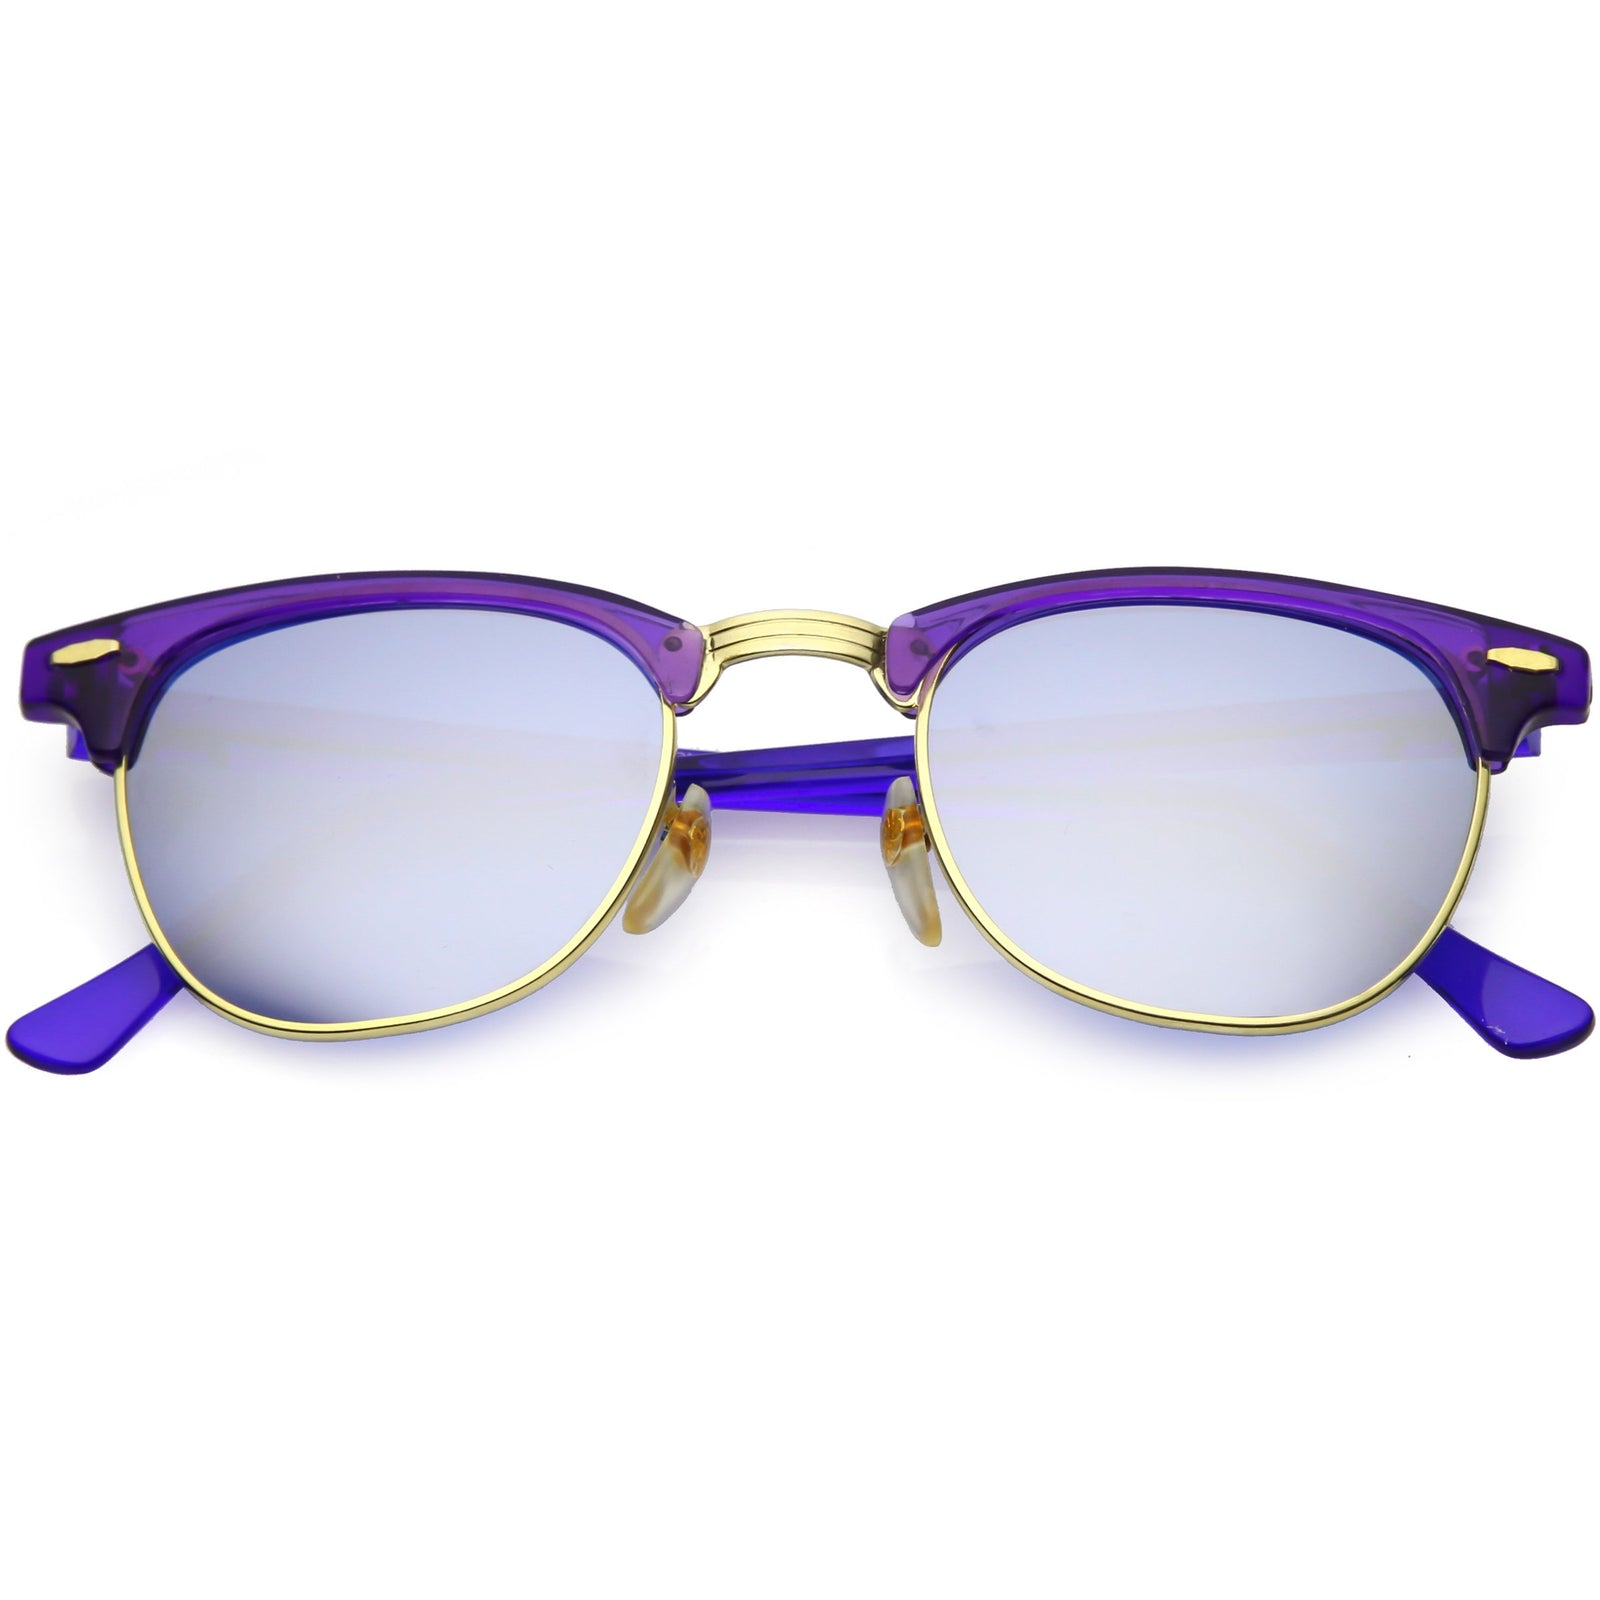 114cc92b194c1 Retro True Vintage Candy Color Half Frame Mirrored Lens Sunglasses C638